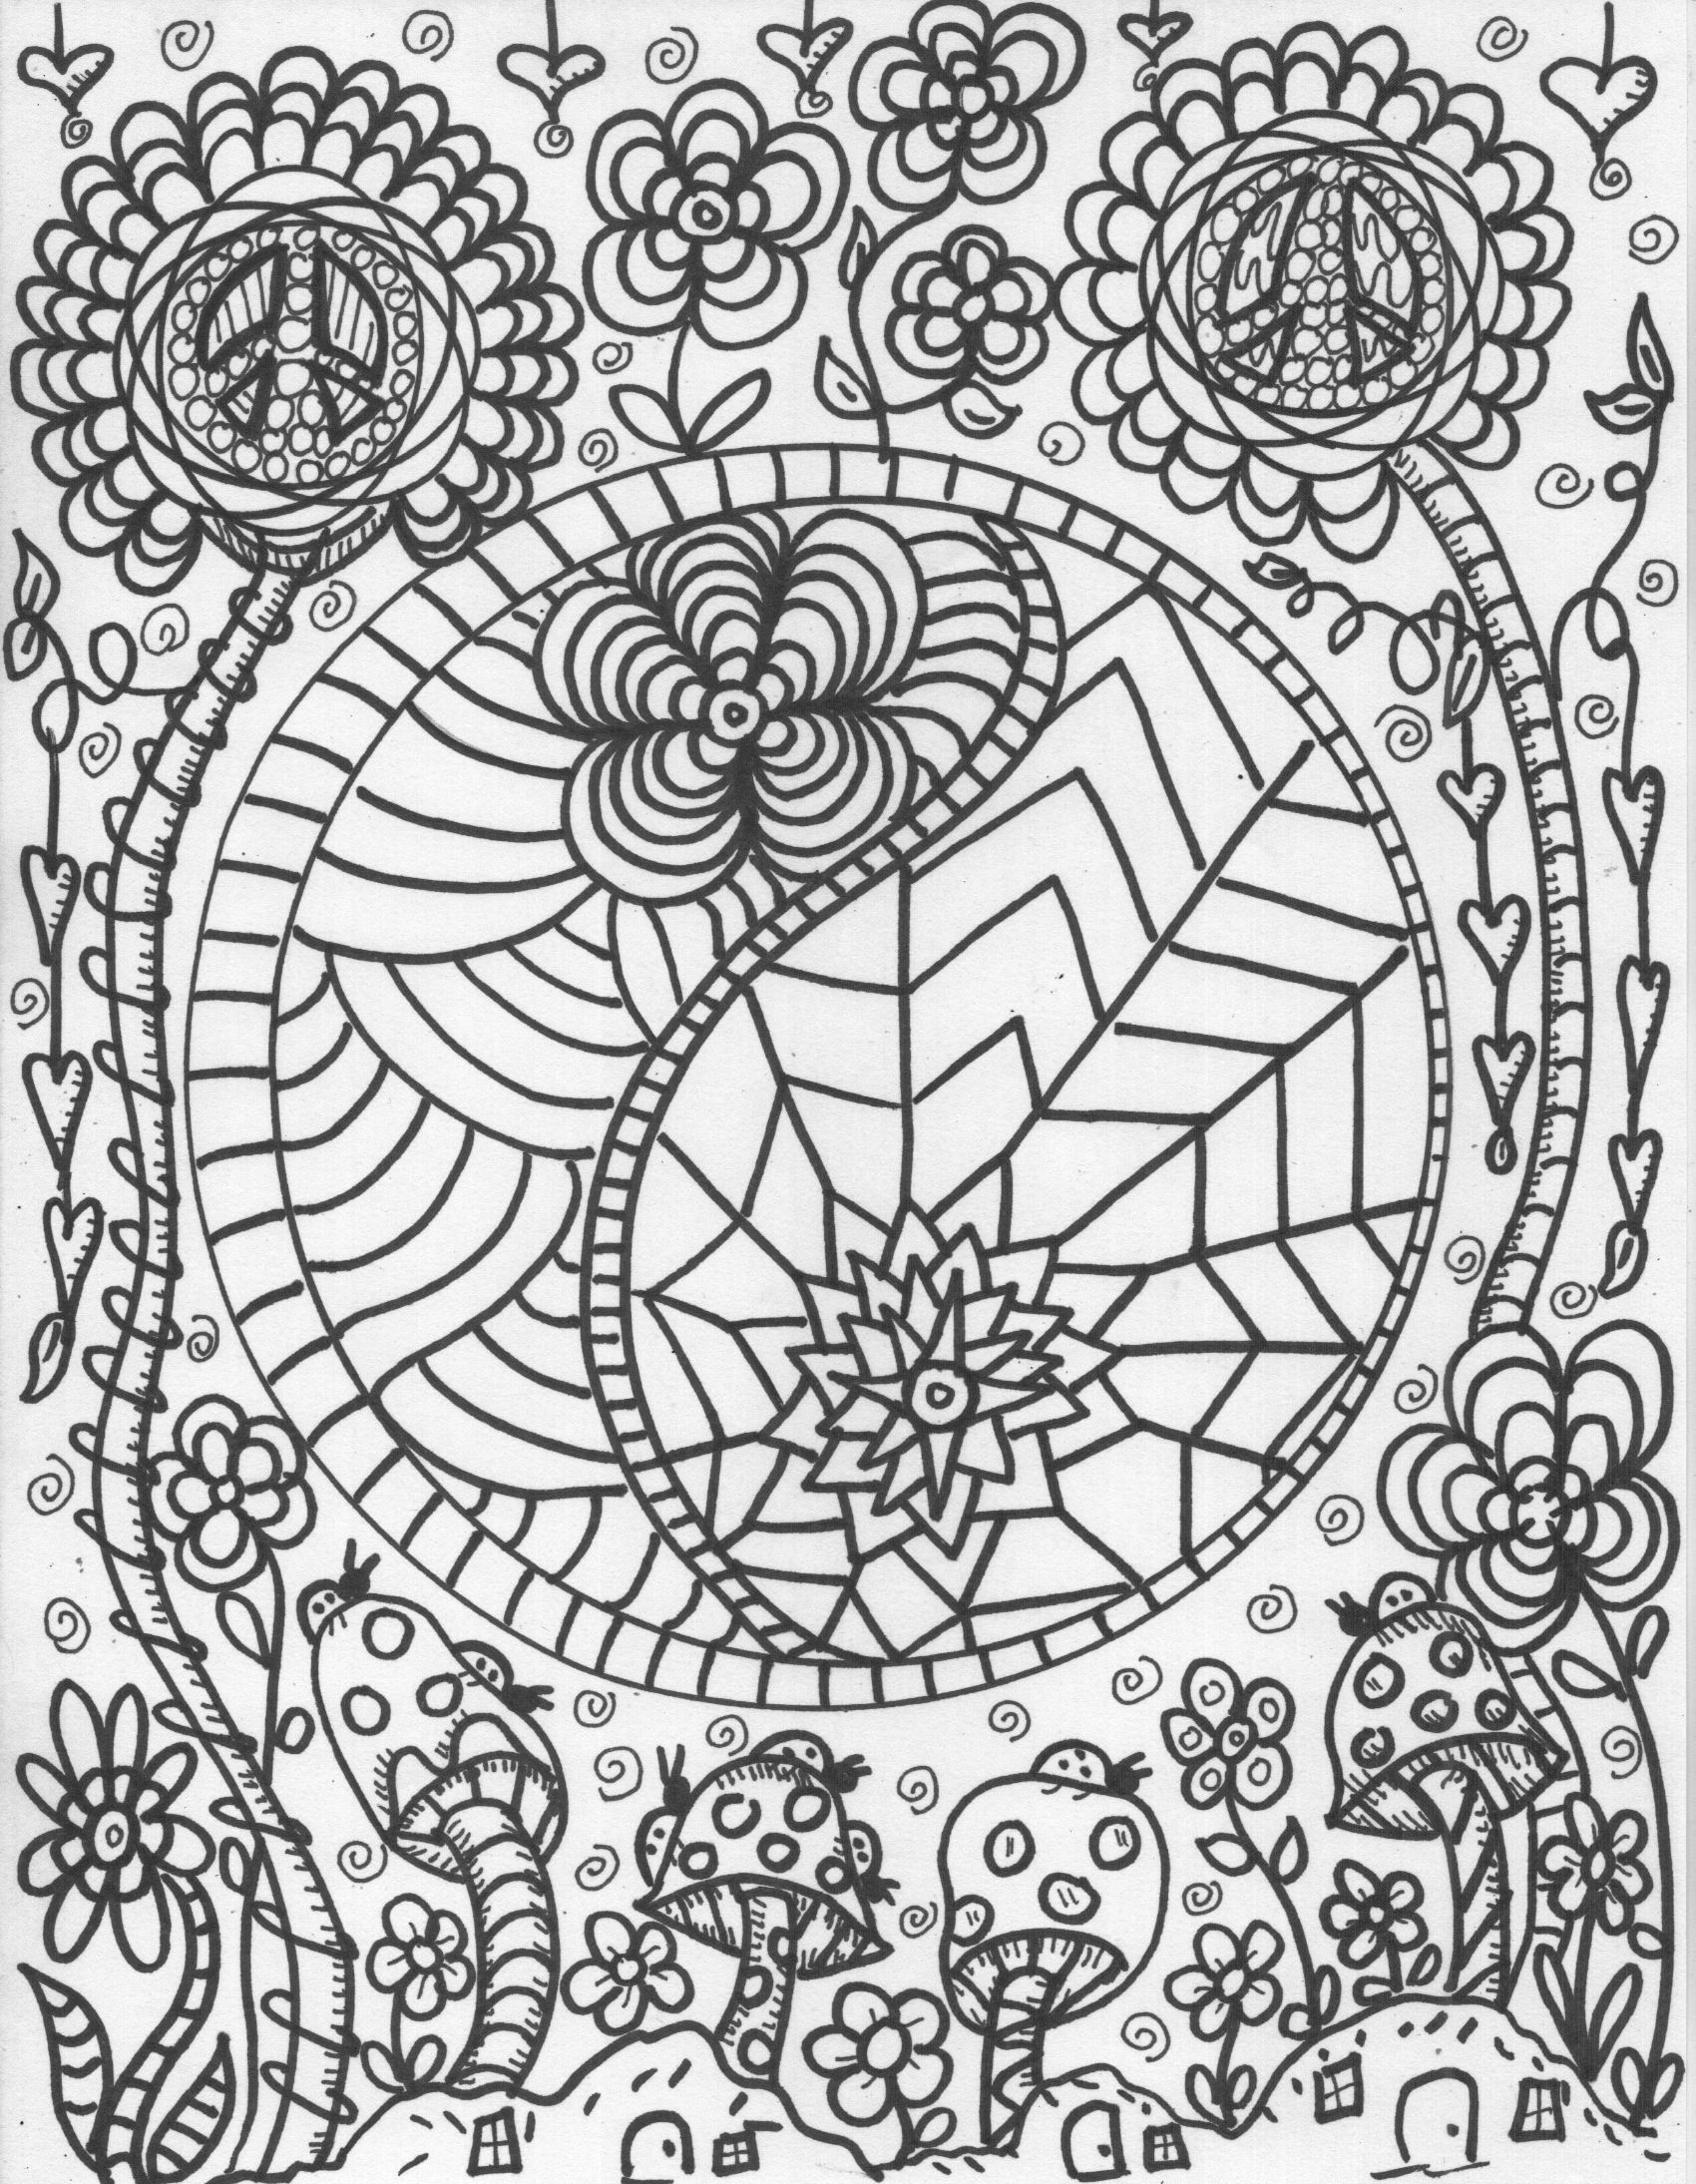 Abstract Halloween Coloring Pages : Abstract doodle zentangle coloring pages colouring adult